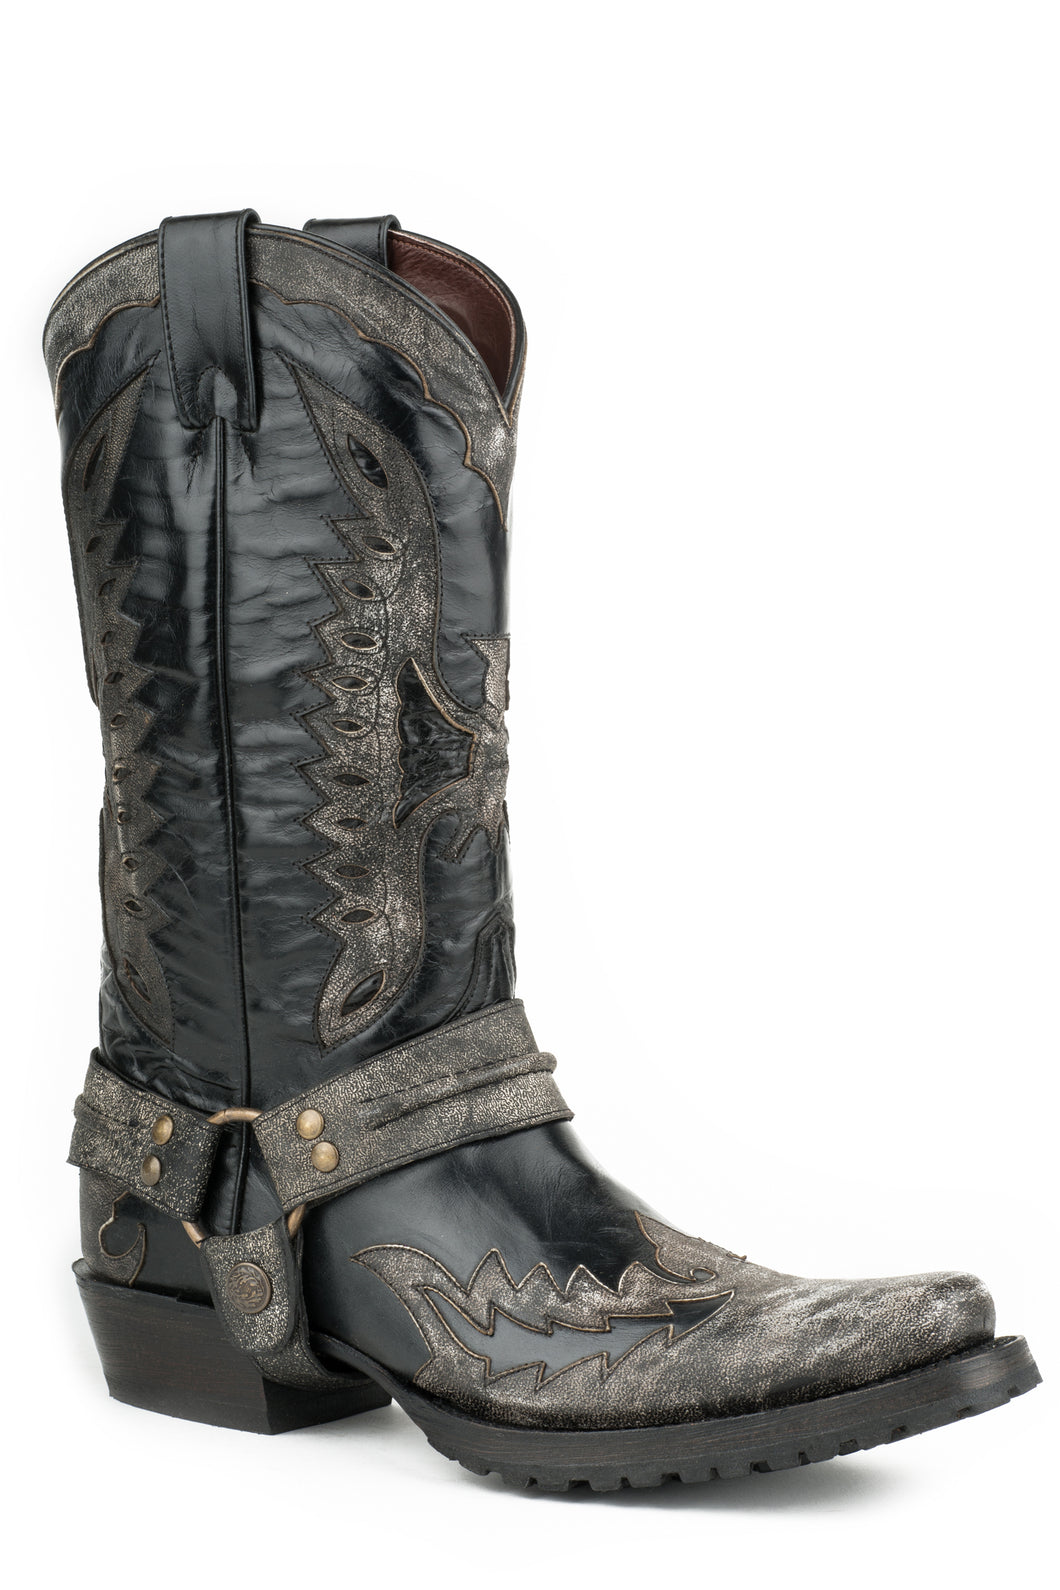 Outlaw Eagle Biker Boot Mens Boot Black Wdistressed Eagle Overlay